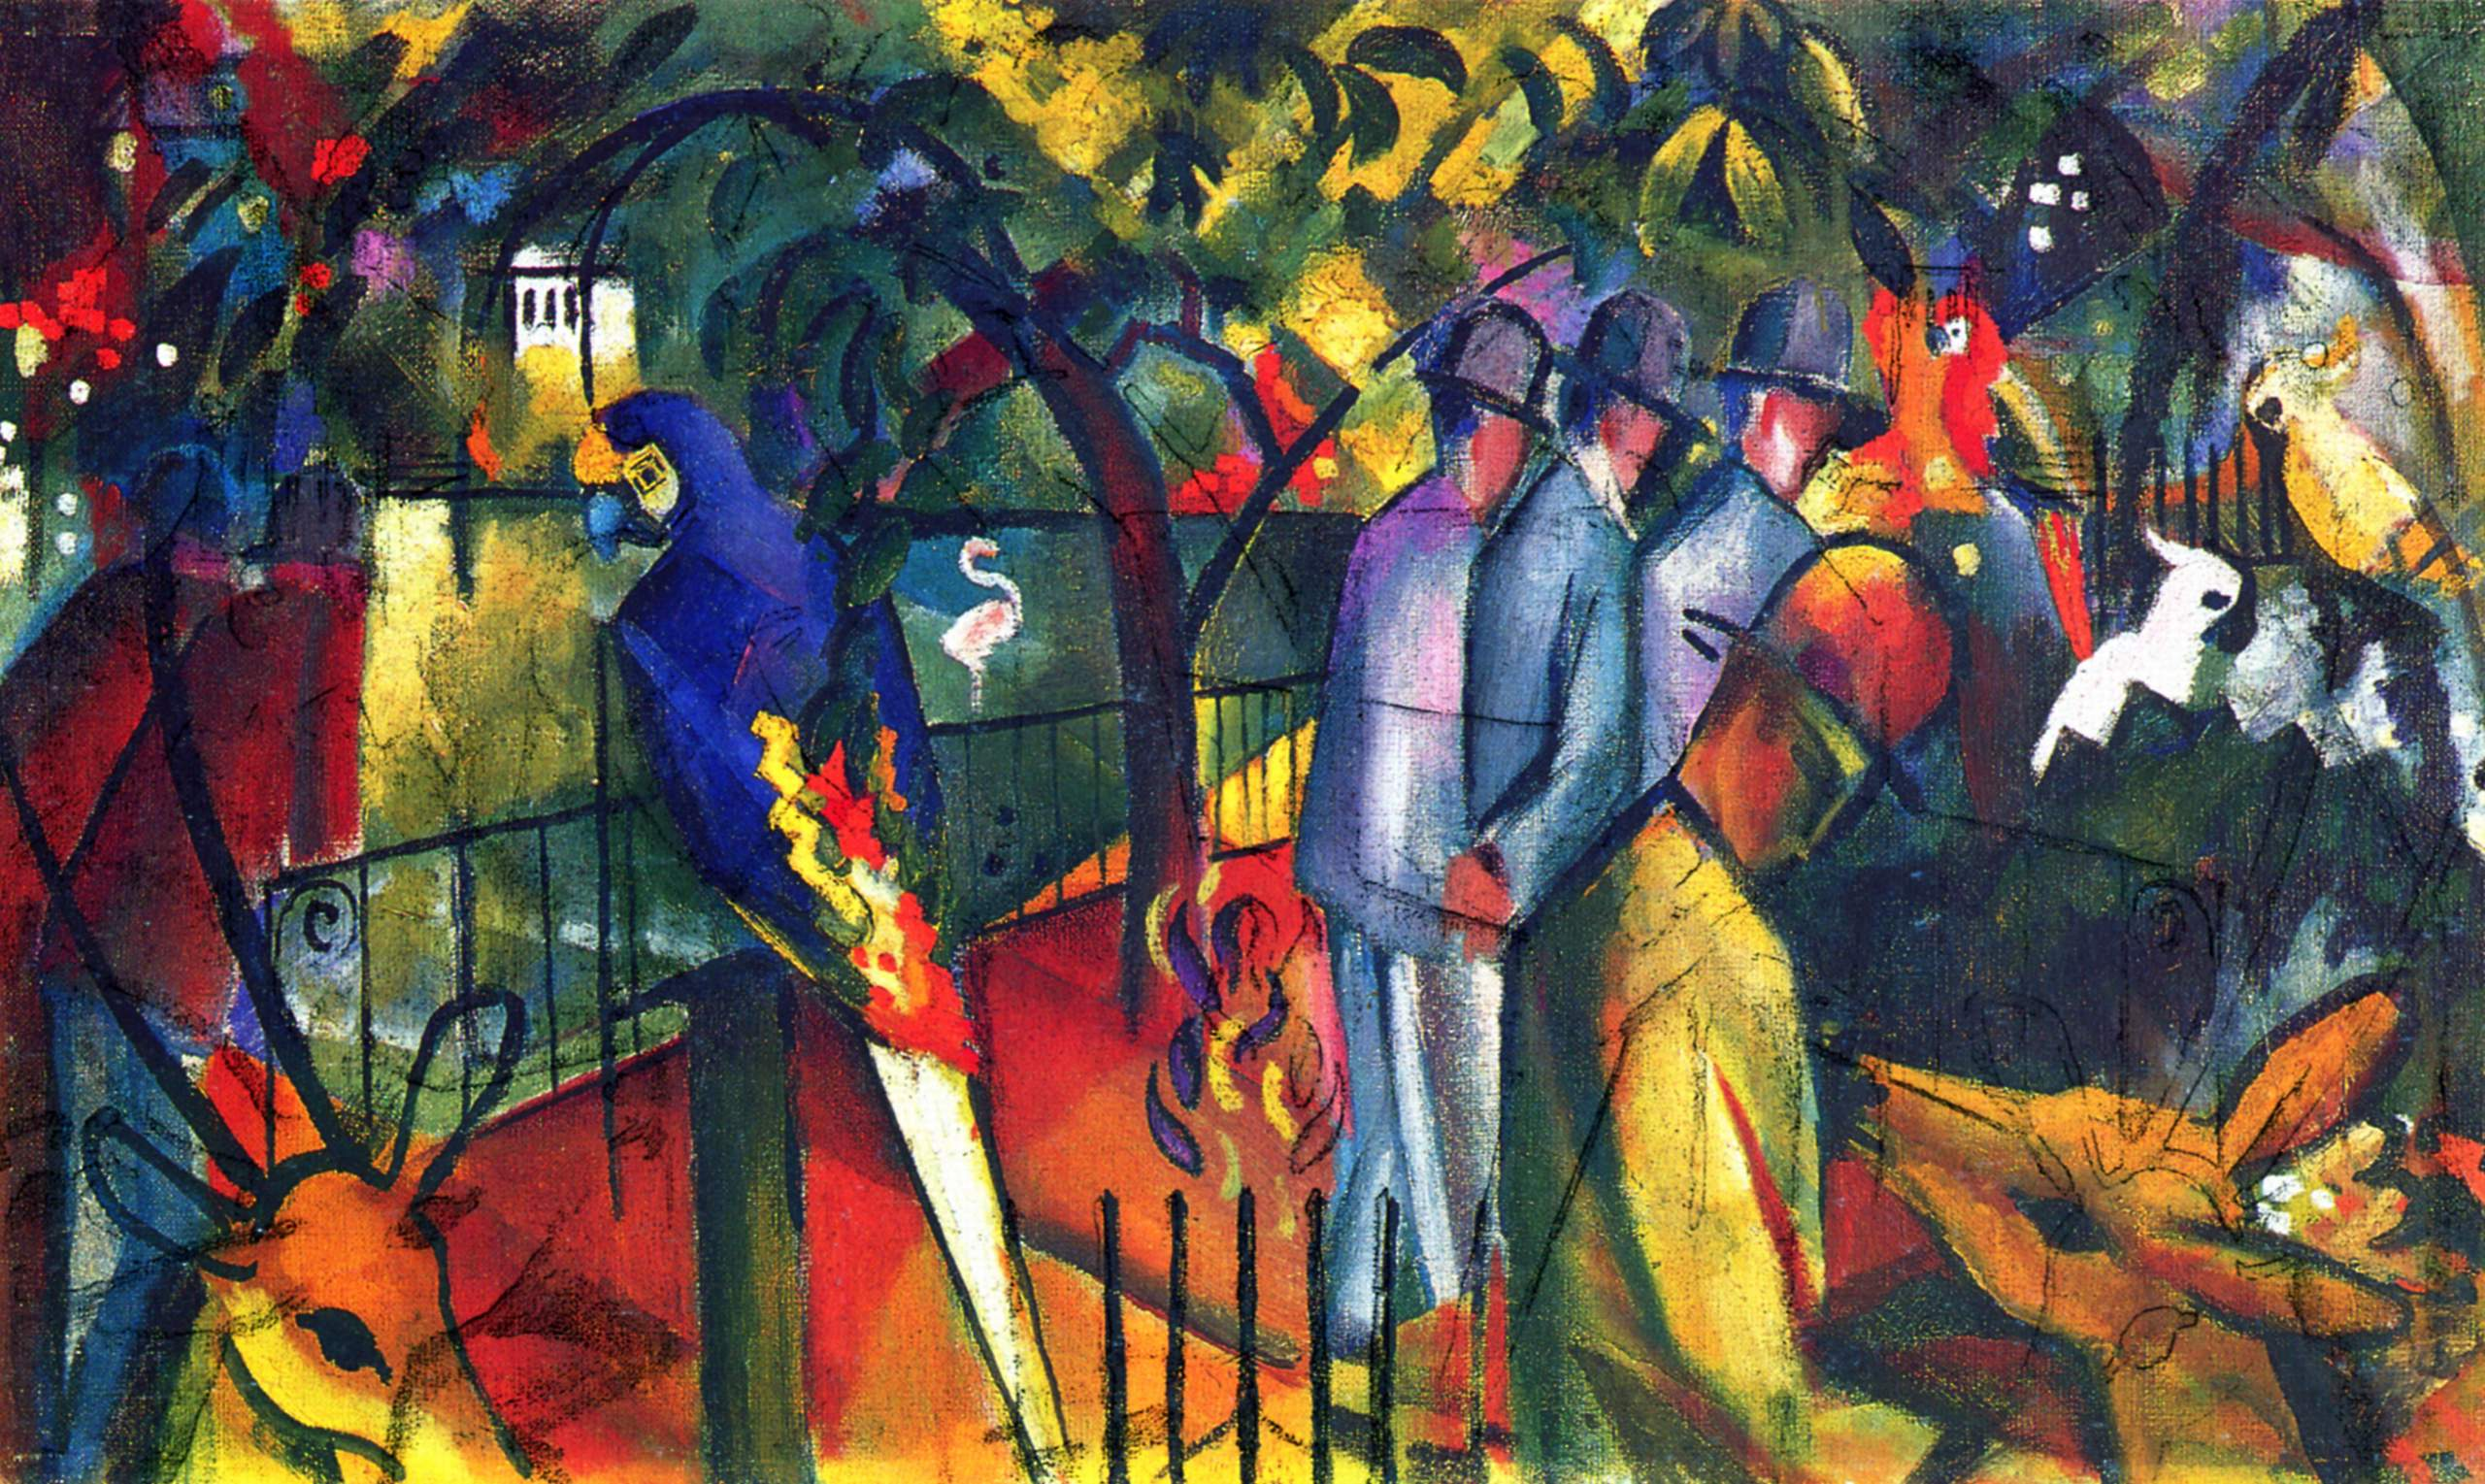 File:August Macke 053.jpg - Wikimedia Commons